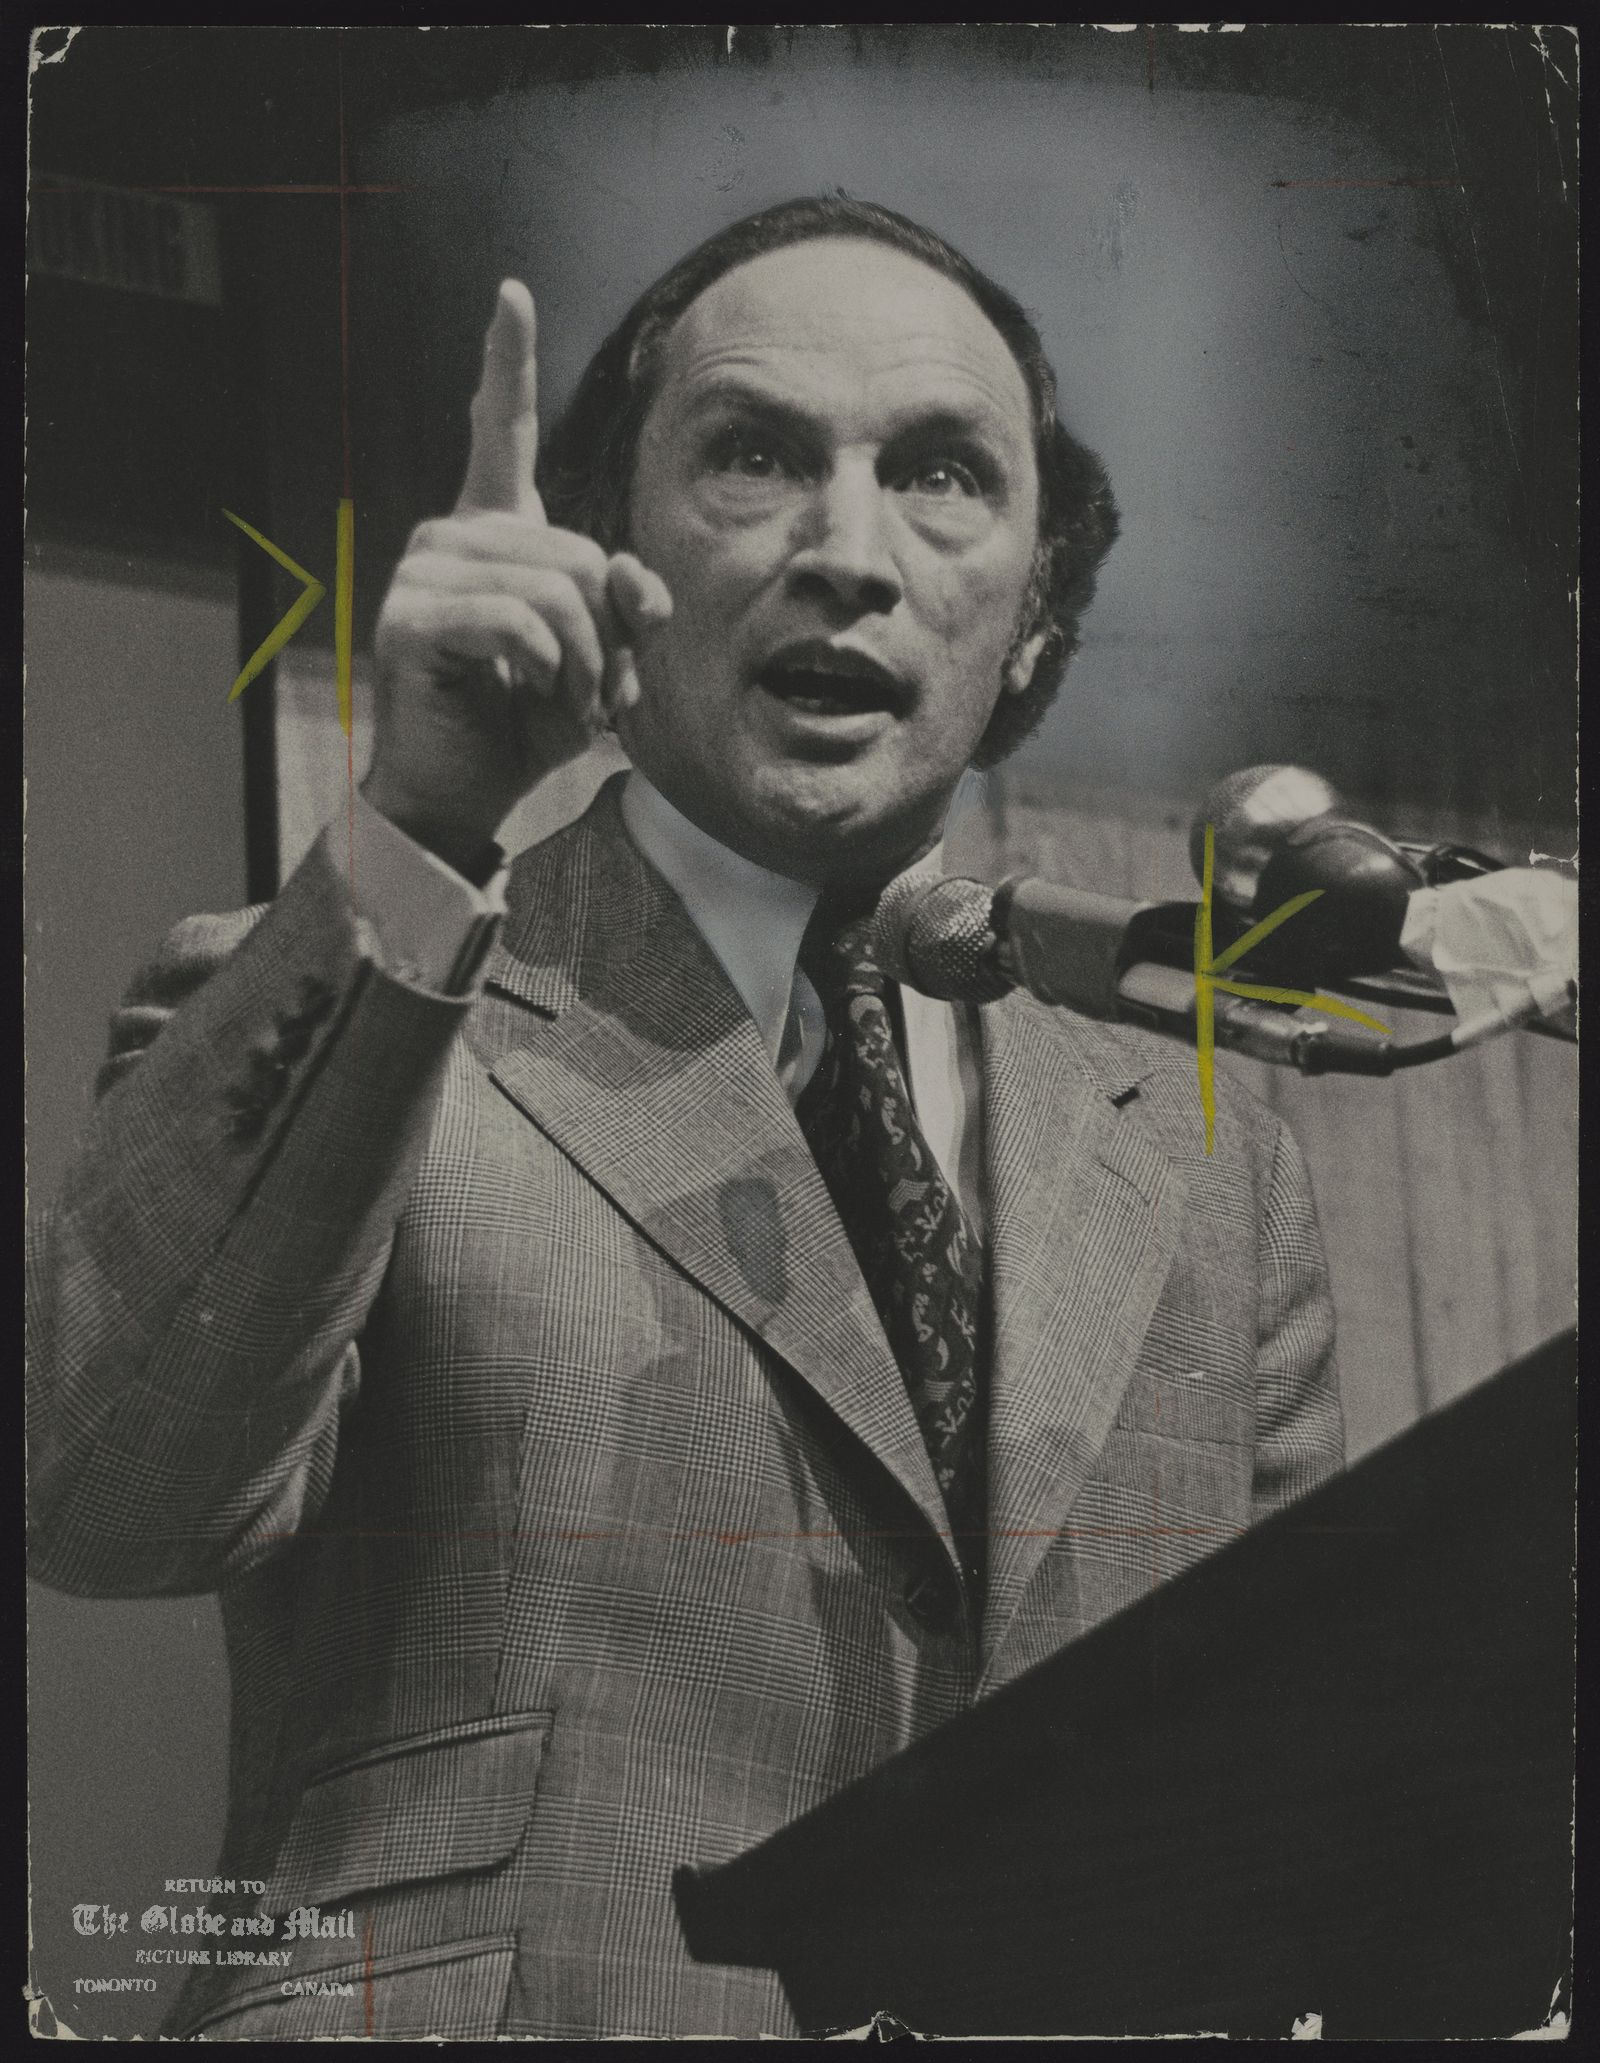 Pierre TRUDEAU Ottawa. Politician. Trudeau Campaigning at York University at a gathering of Lberal candidates for Ontario ridings on May 18, 1974